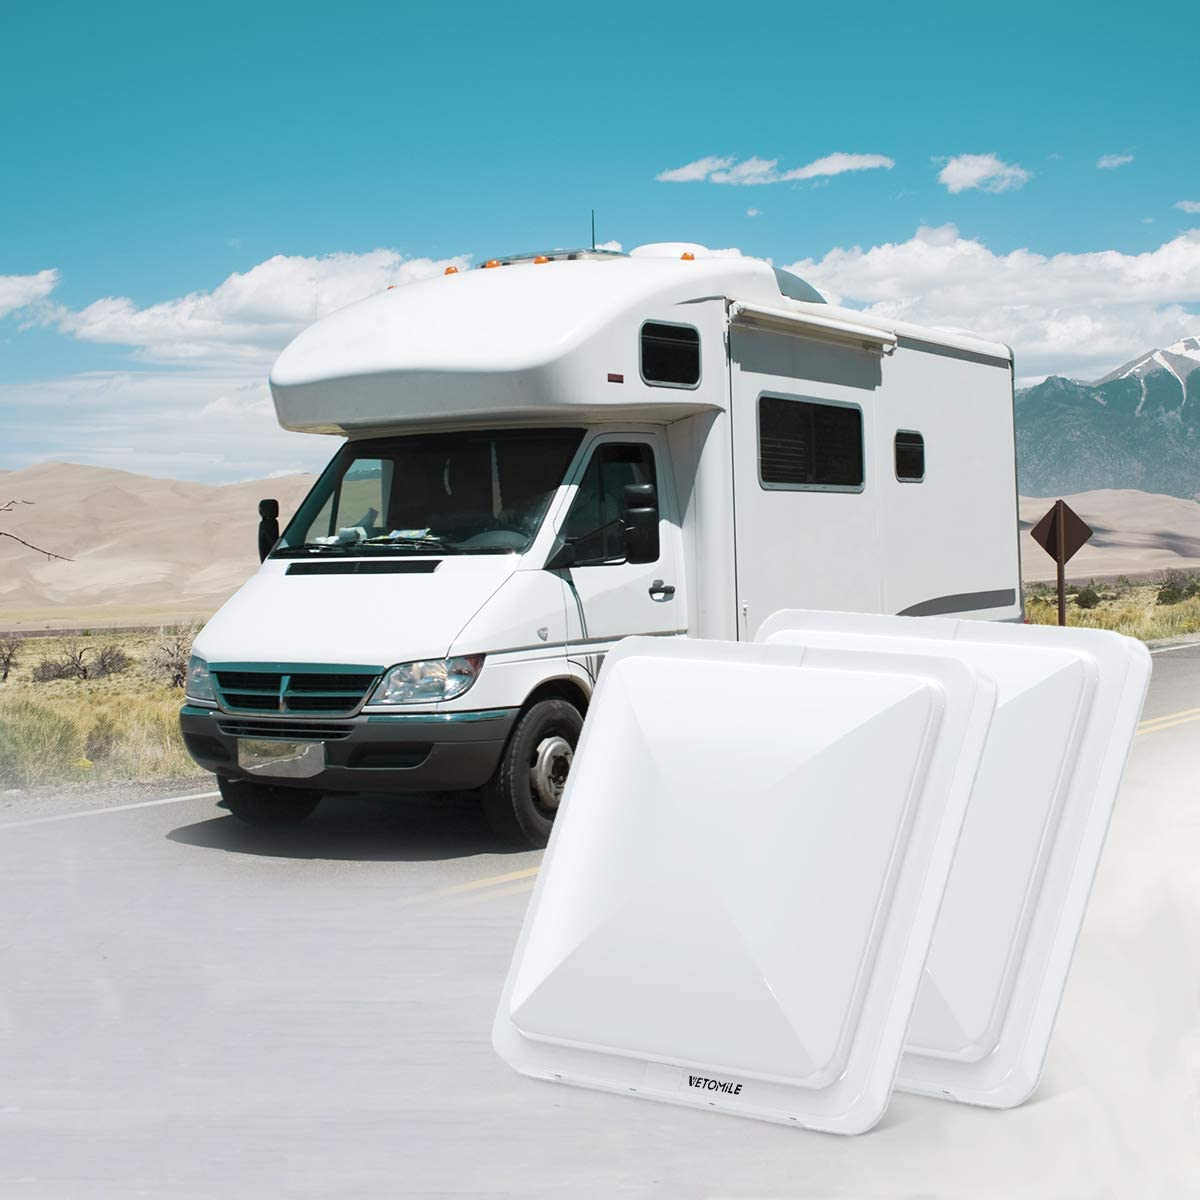 VETOMILE RV Roof Vent Lid Cover 14 inch Universal White Cover Lid for Motorhome Trailer RV Camper 2 Pack: Home Improvement